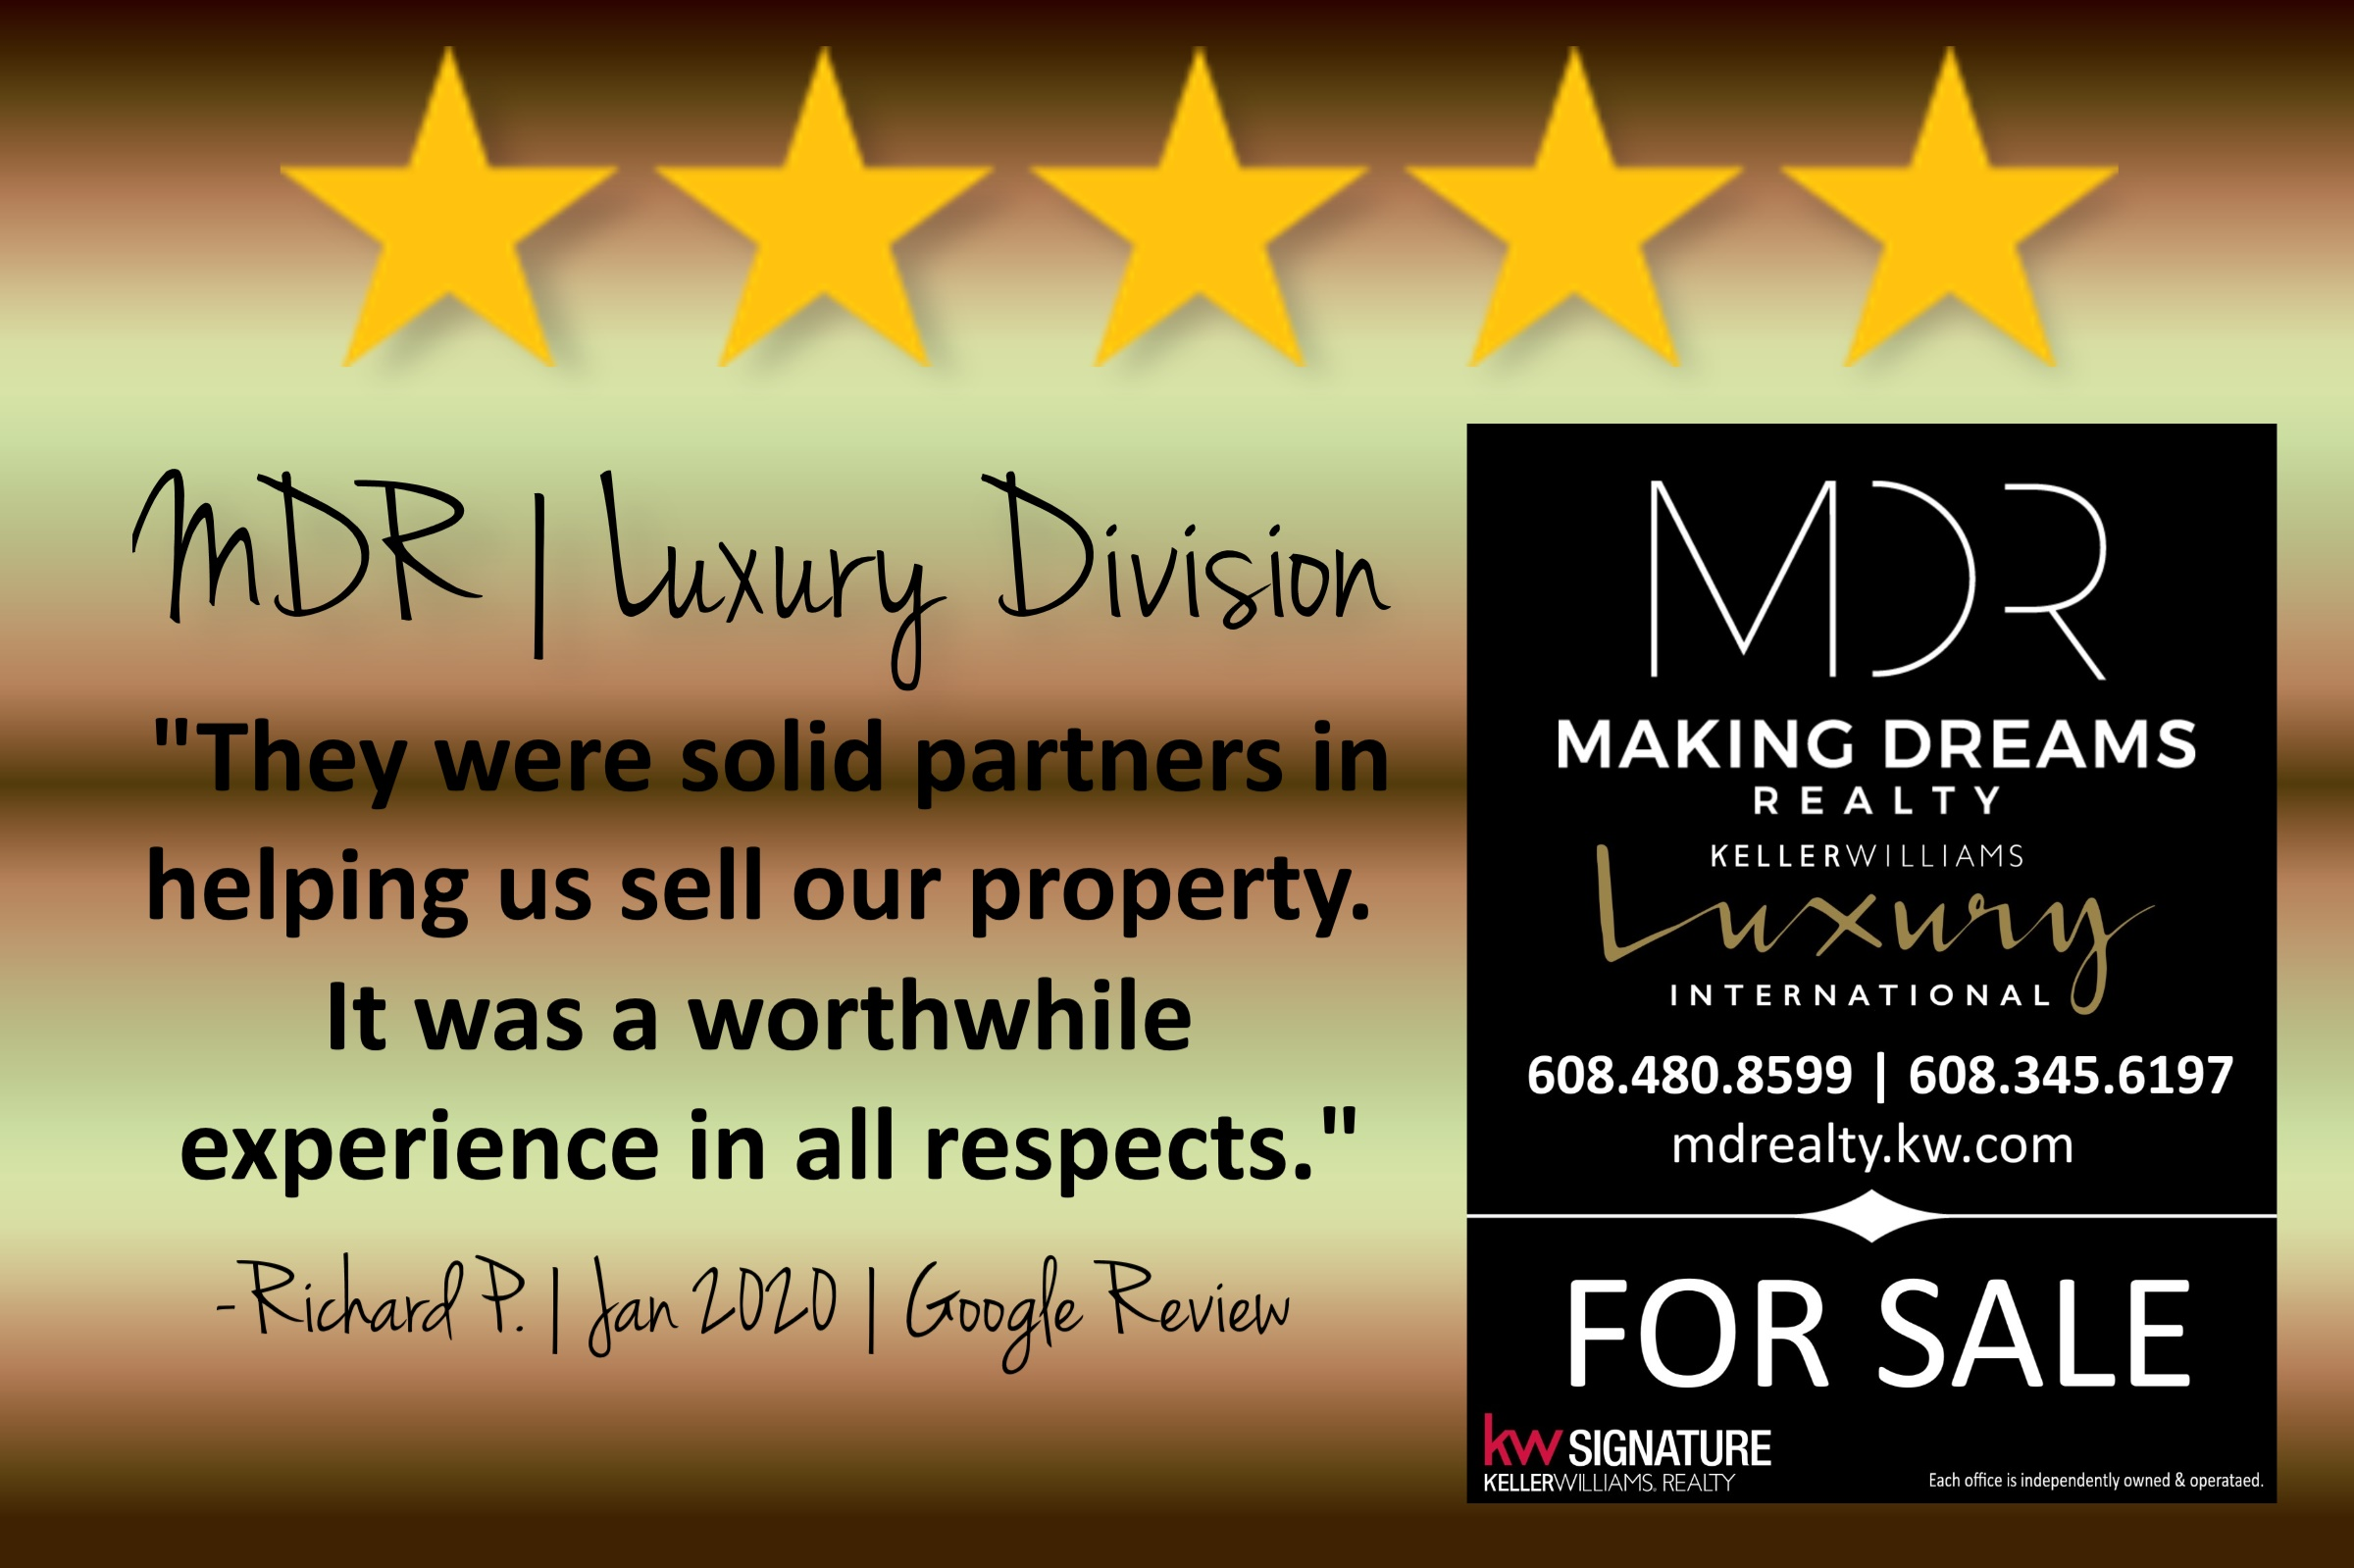 5 star review of MAKING DREAMS Realty luxury division